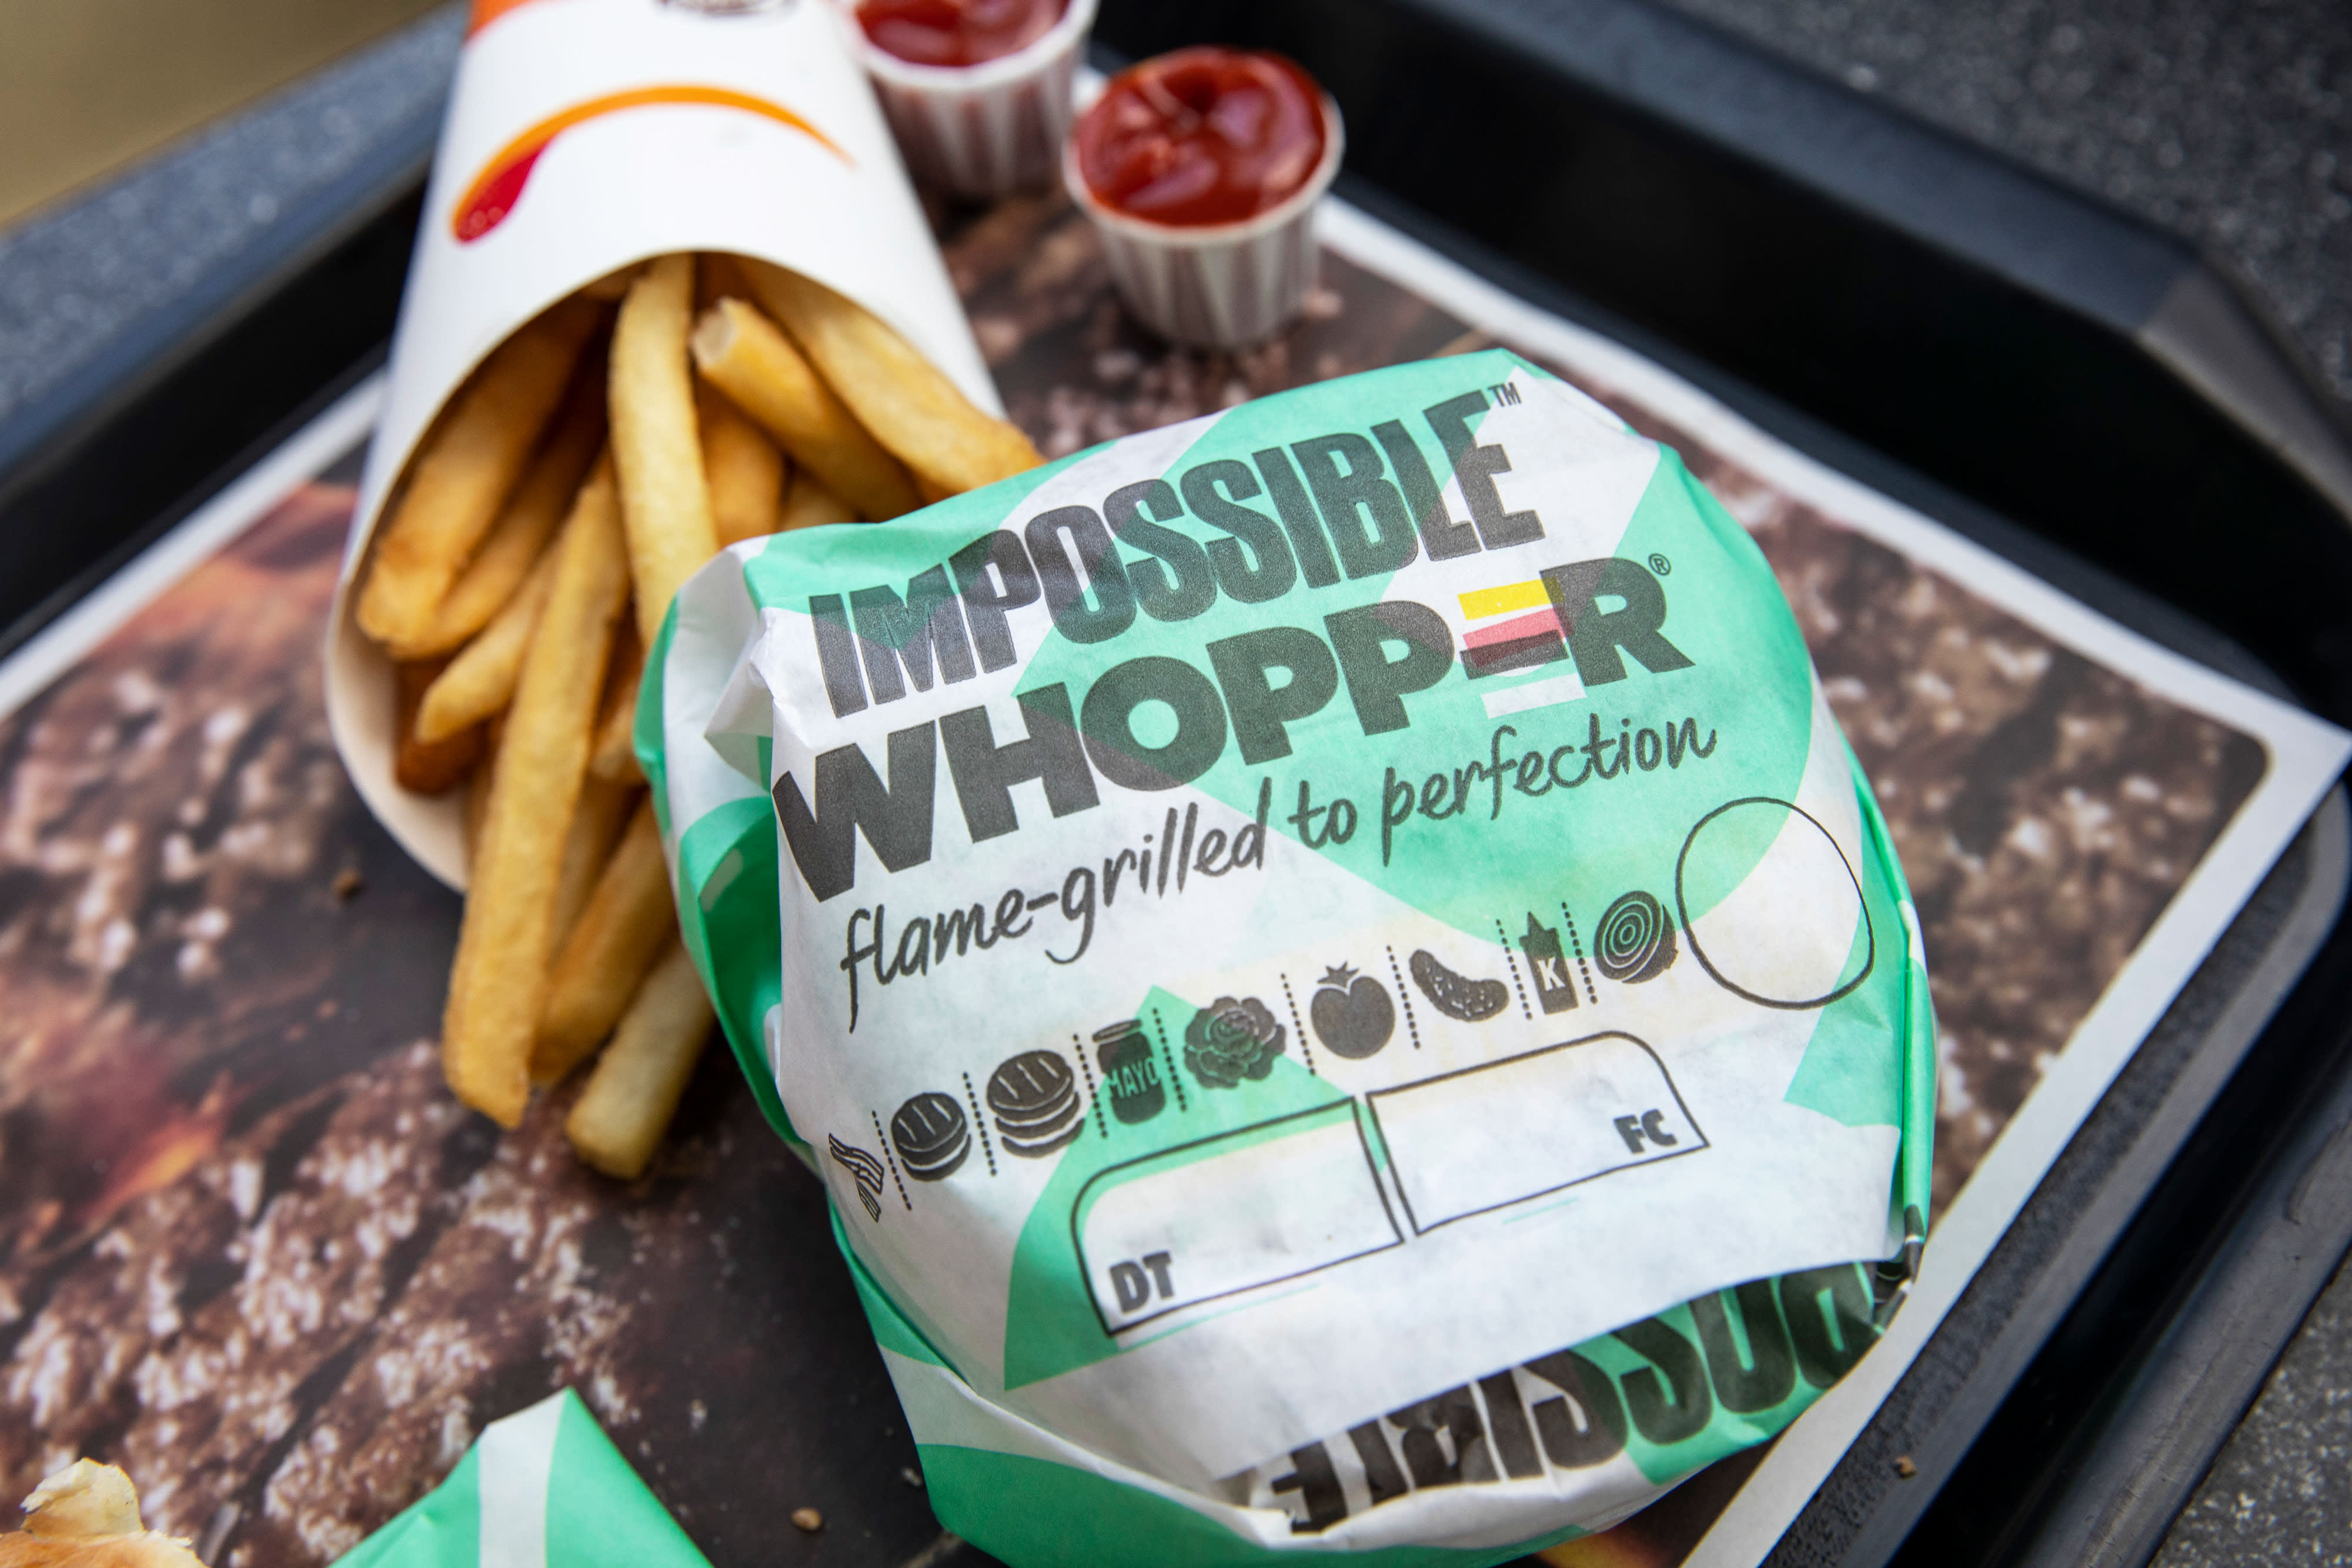 Beyond Meat uses climate change to market fake meat substitutes. Scientists are cautious